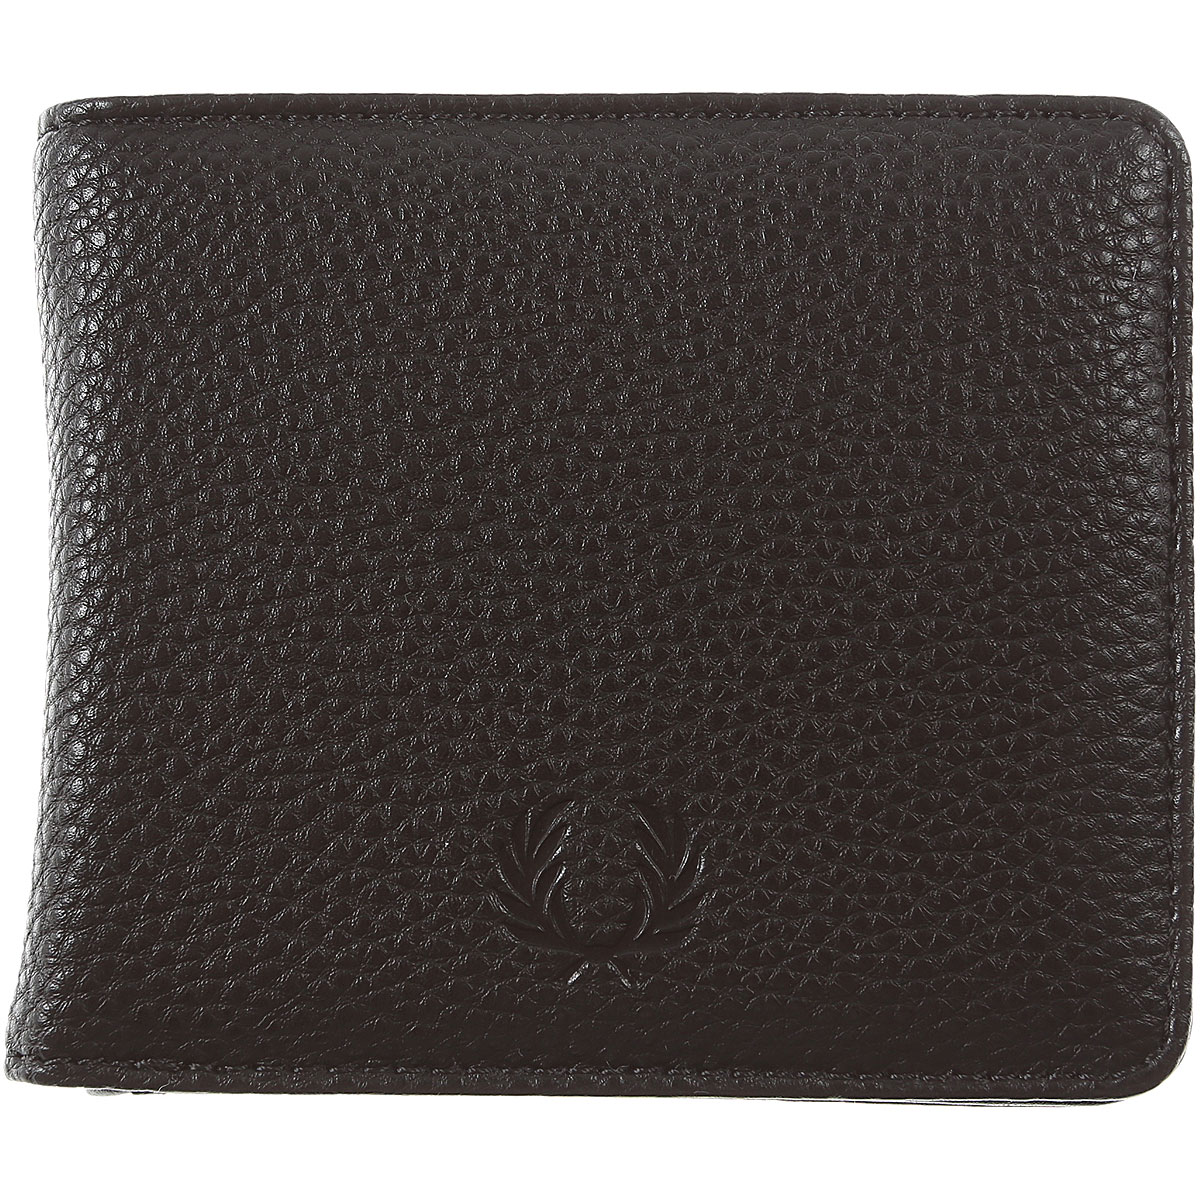 Fred Perry Briefcases On Sale, Black, Leather, 2019